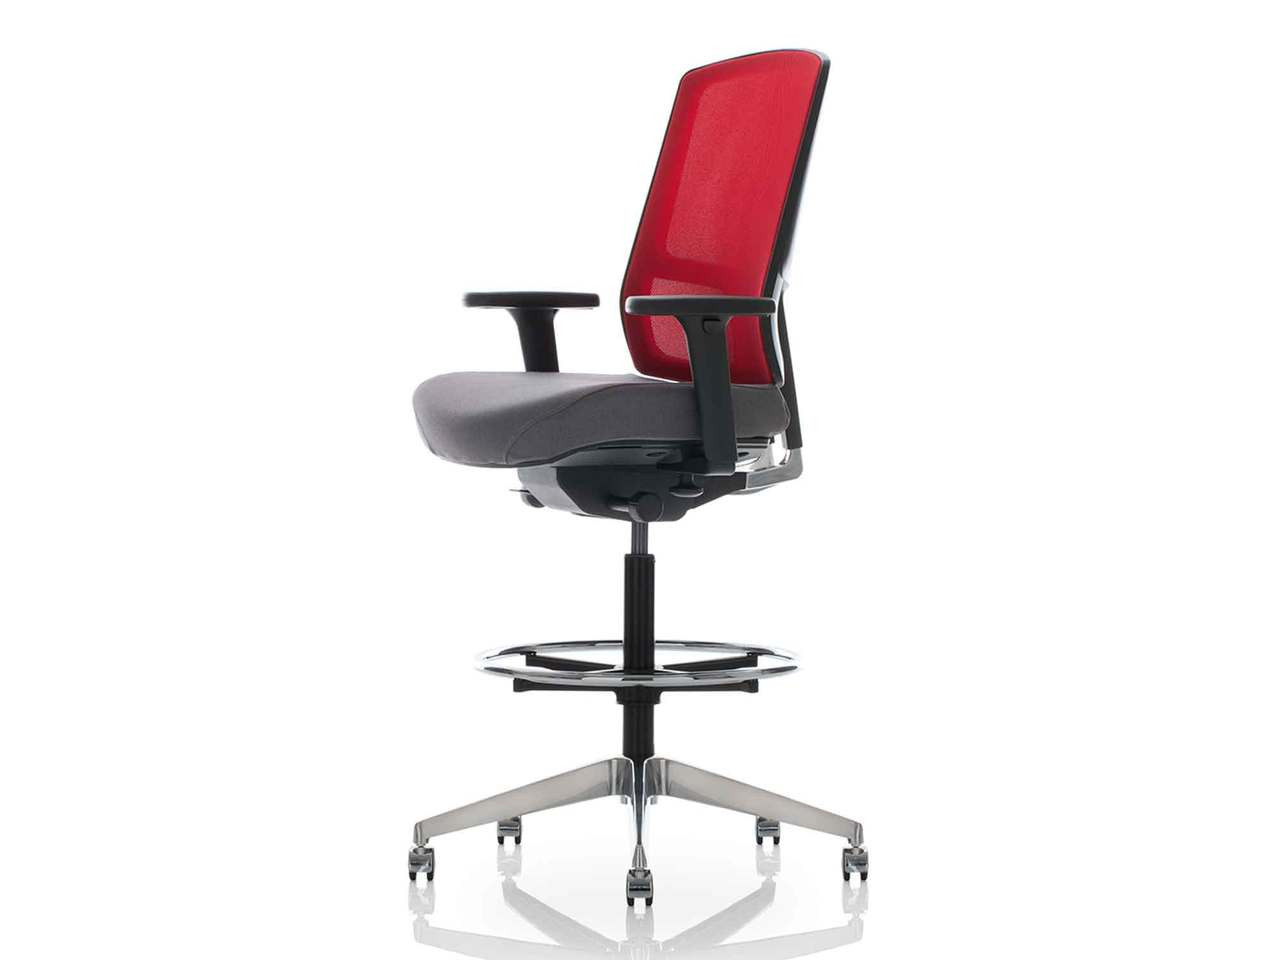 united chair medical stool rocking dimensions expression office furniture warehouse